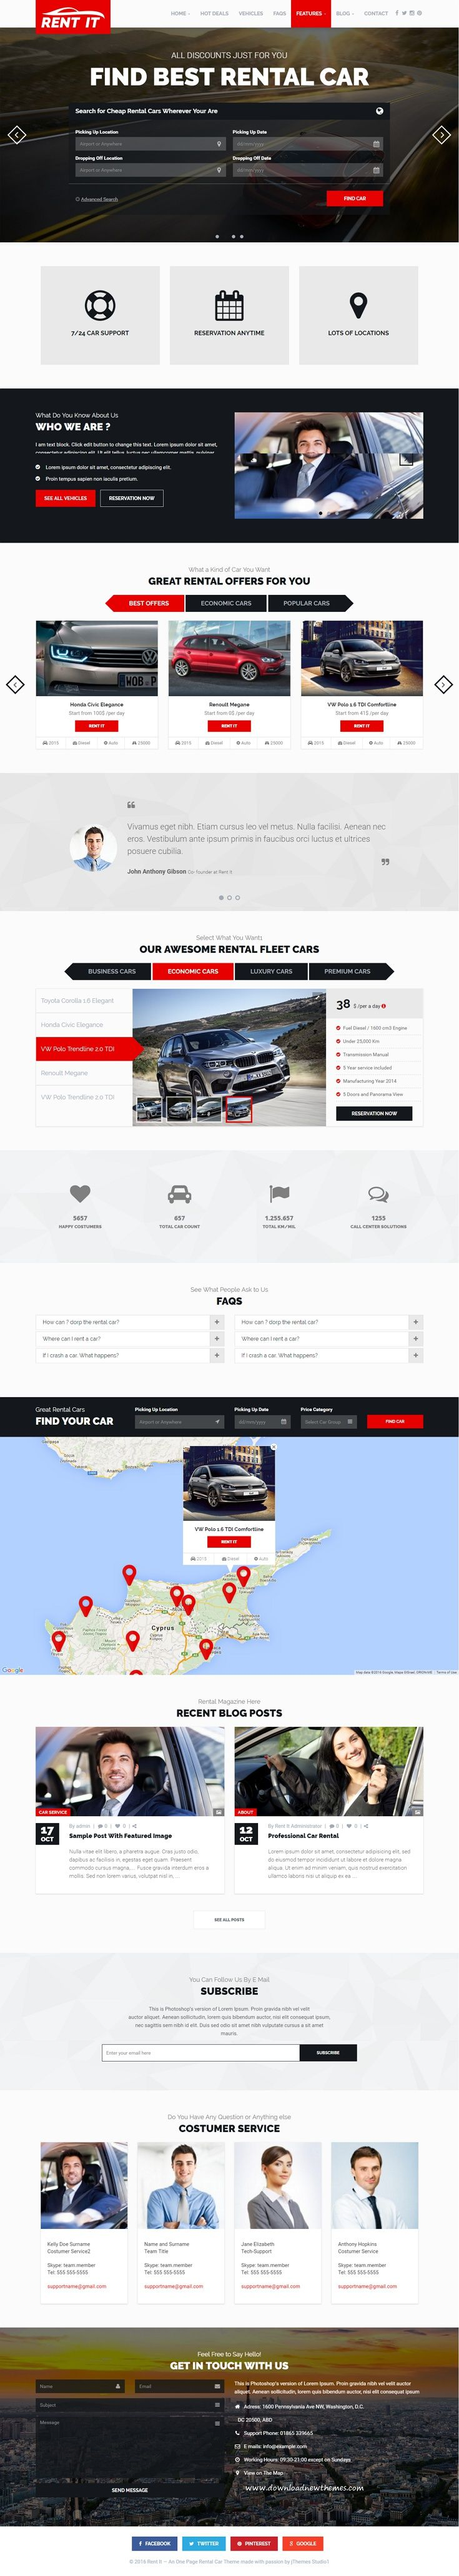 Rentit car bike vehicle rental wordpress theme